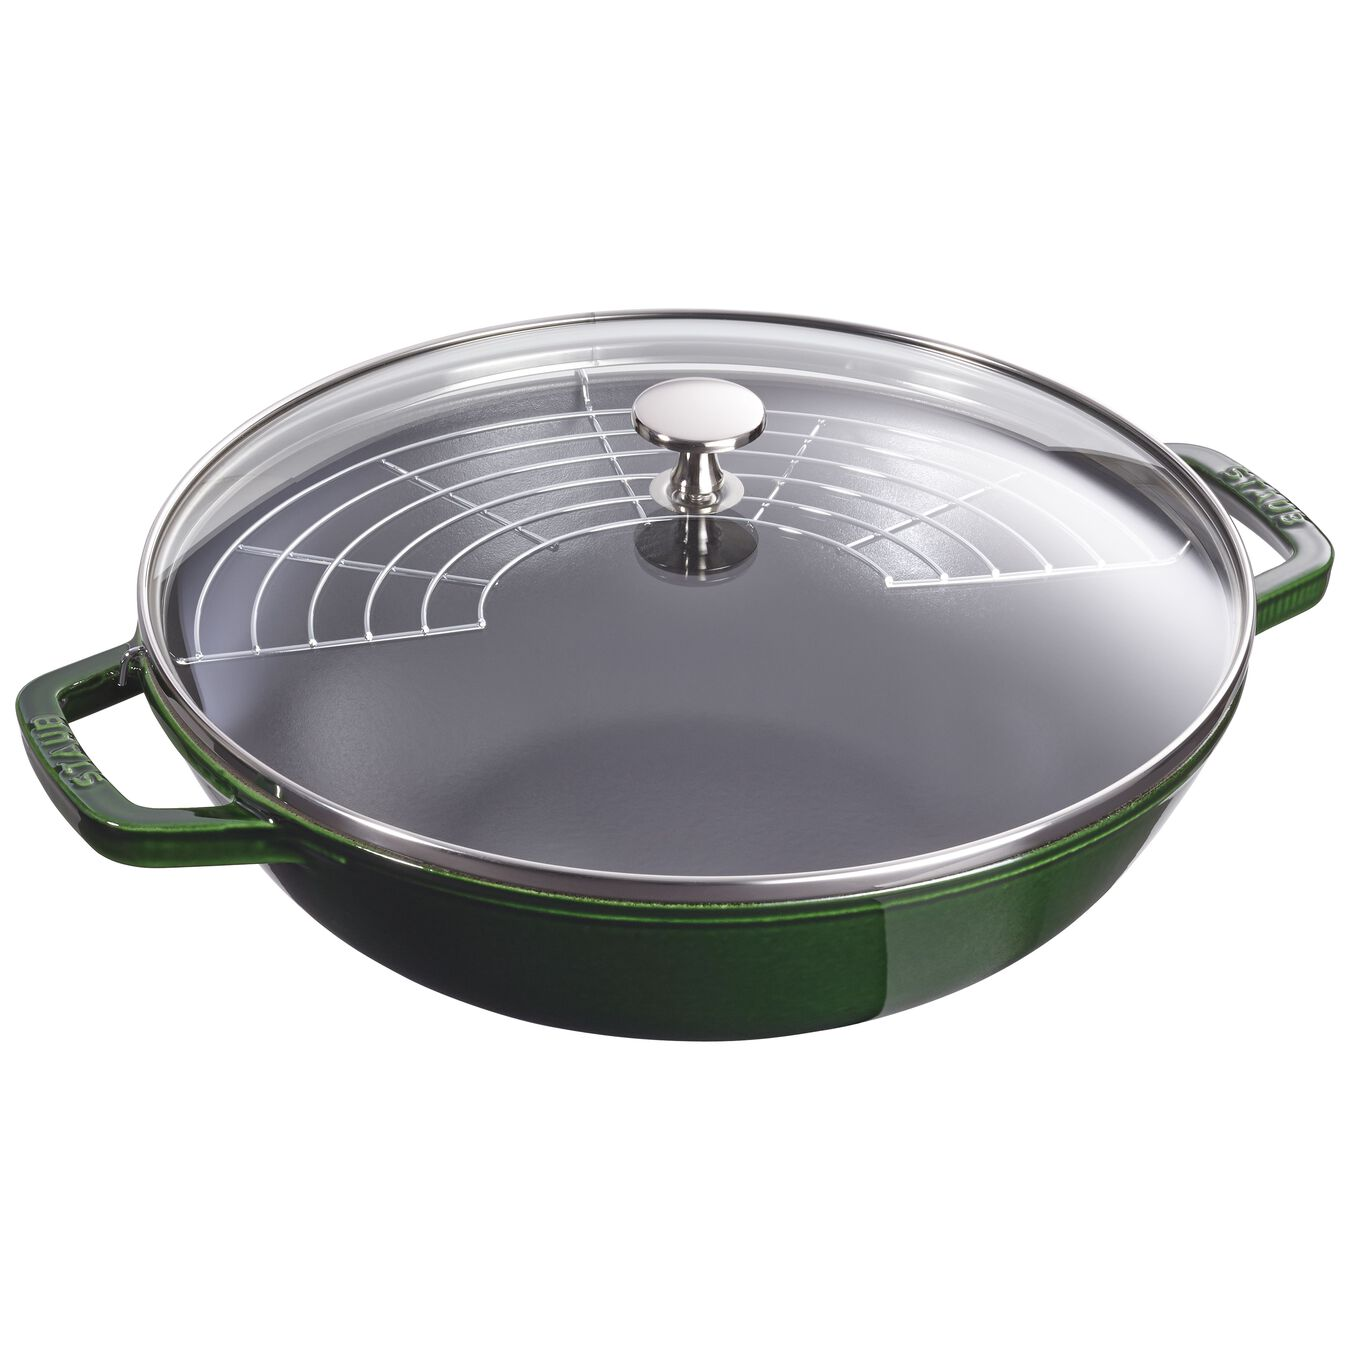 4.5-qt Perfect Pan - Basil,,large 1